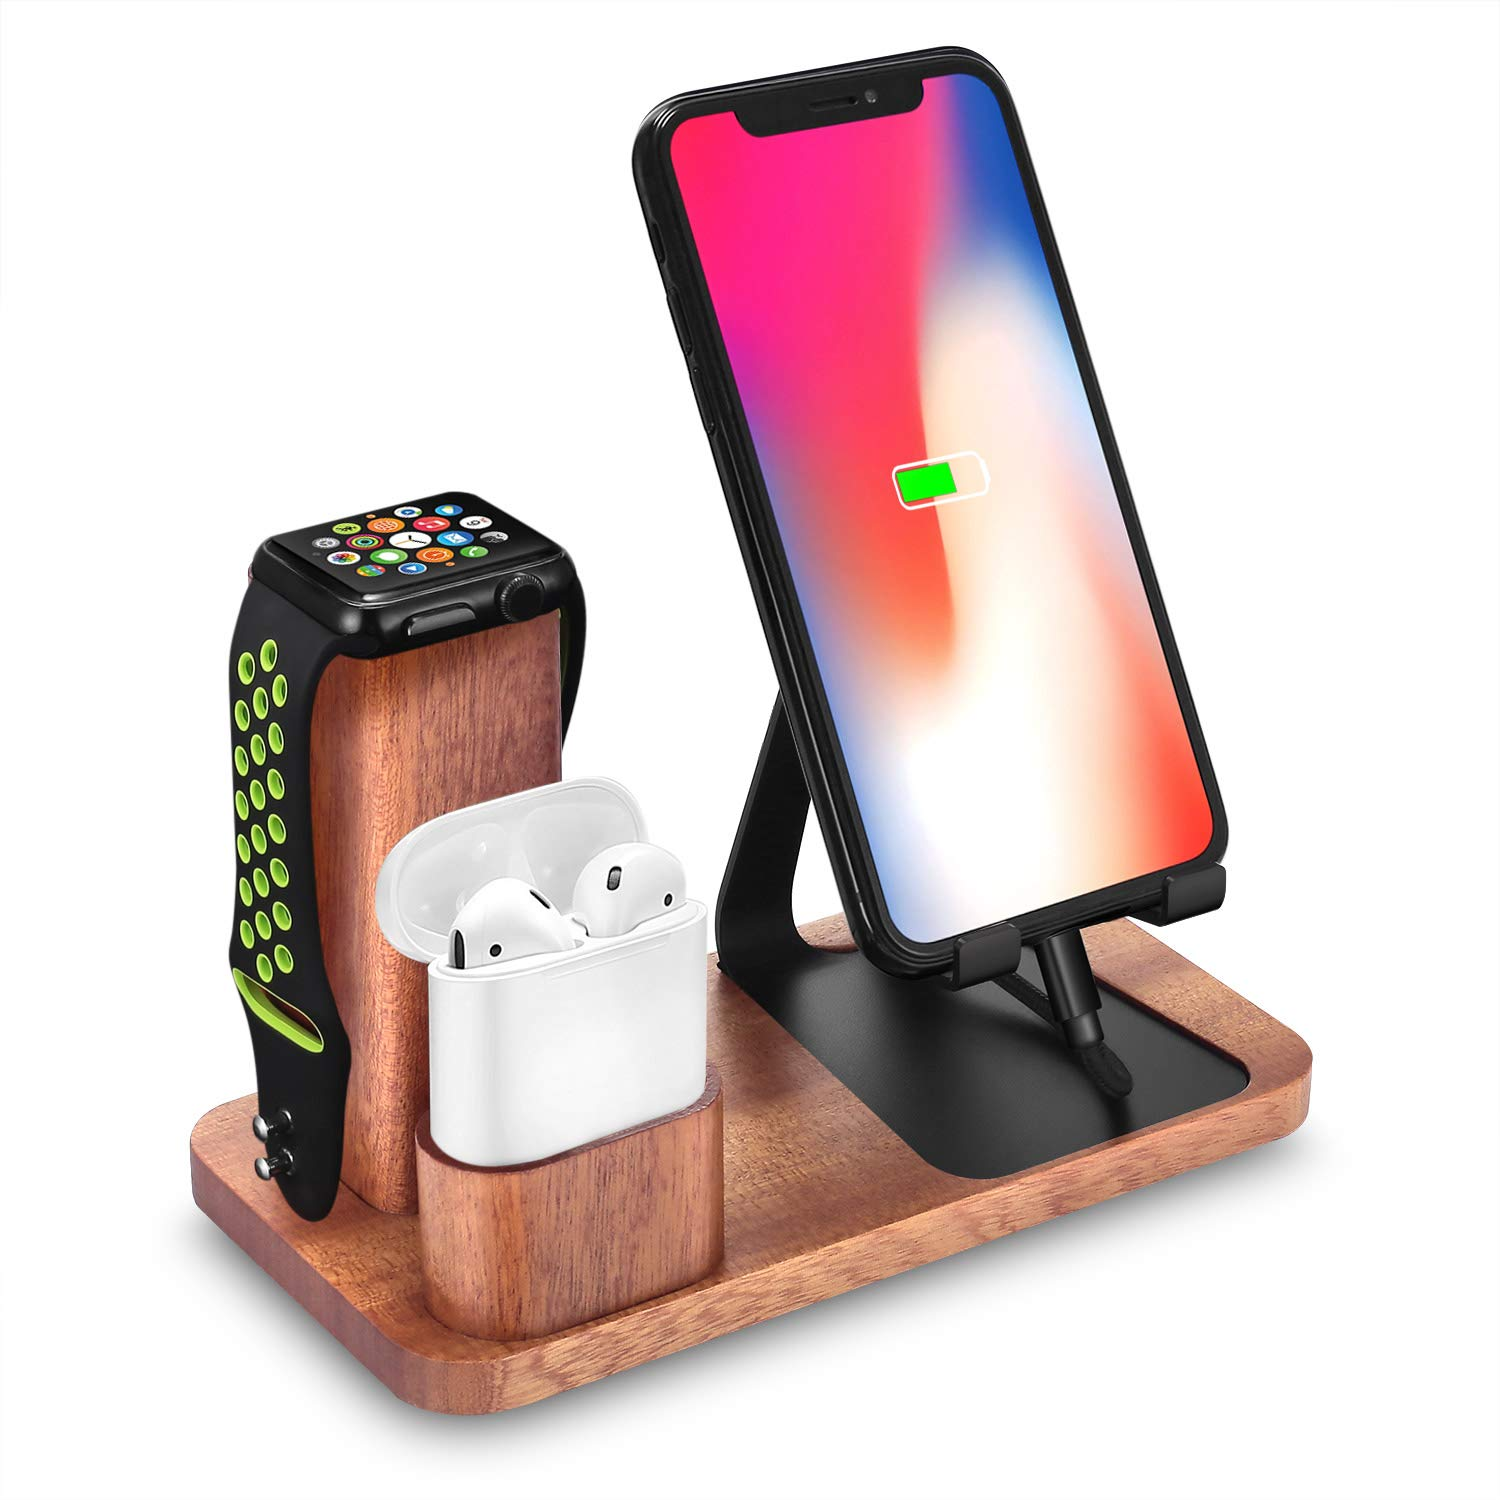 Solid Wood Cell Phone Stand, LiZhi 3 in 1 Universal Charging Dock Station Compatible with Airpods Apple iWatch Series 4/3/2/1 iPhone Xs Max XS XR X 8 7 6S 6 Plus SE 5S 5 Android Smartphone by LiZHi